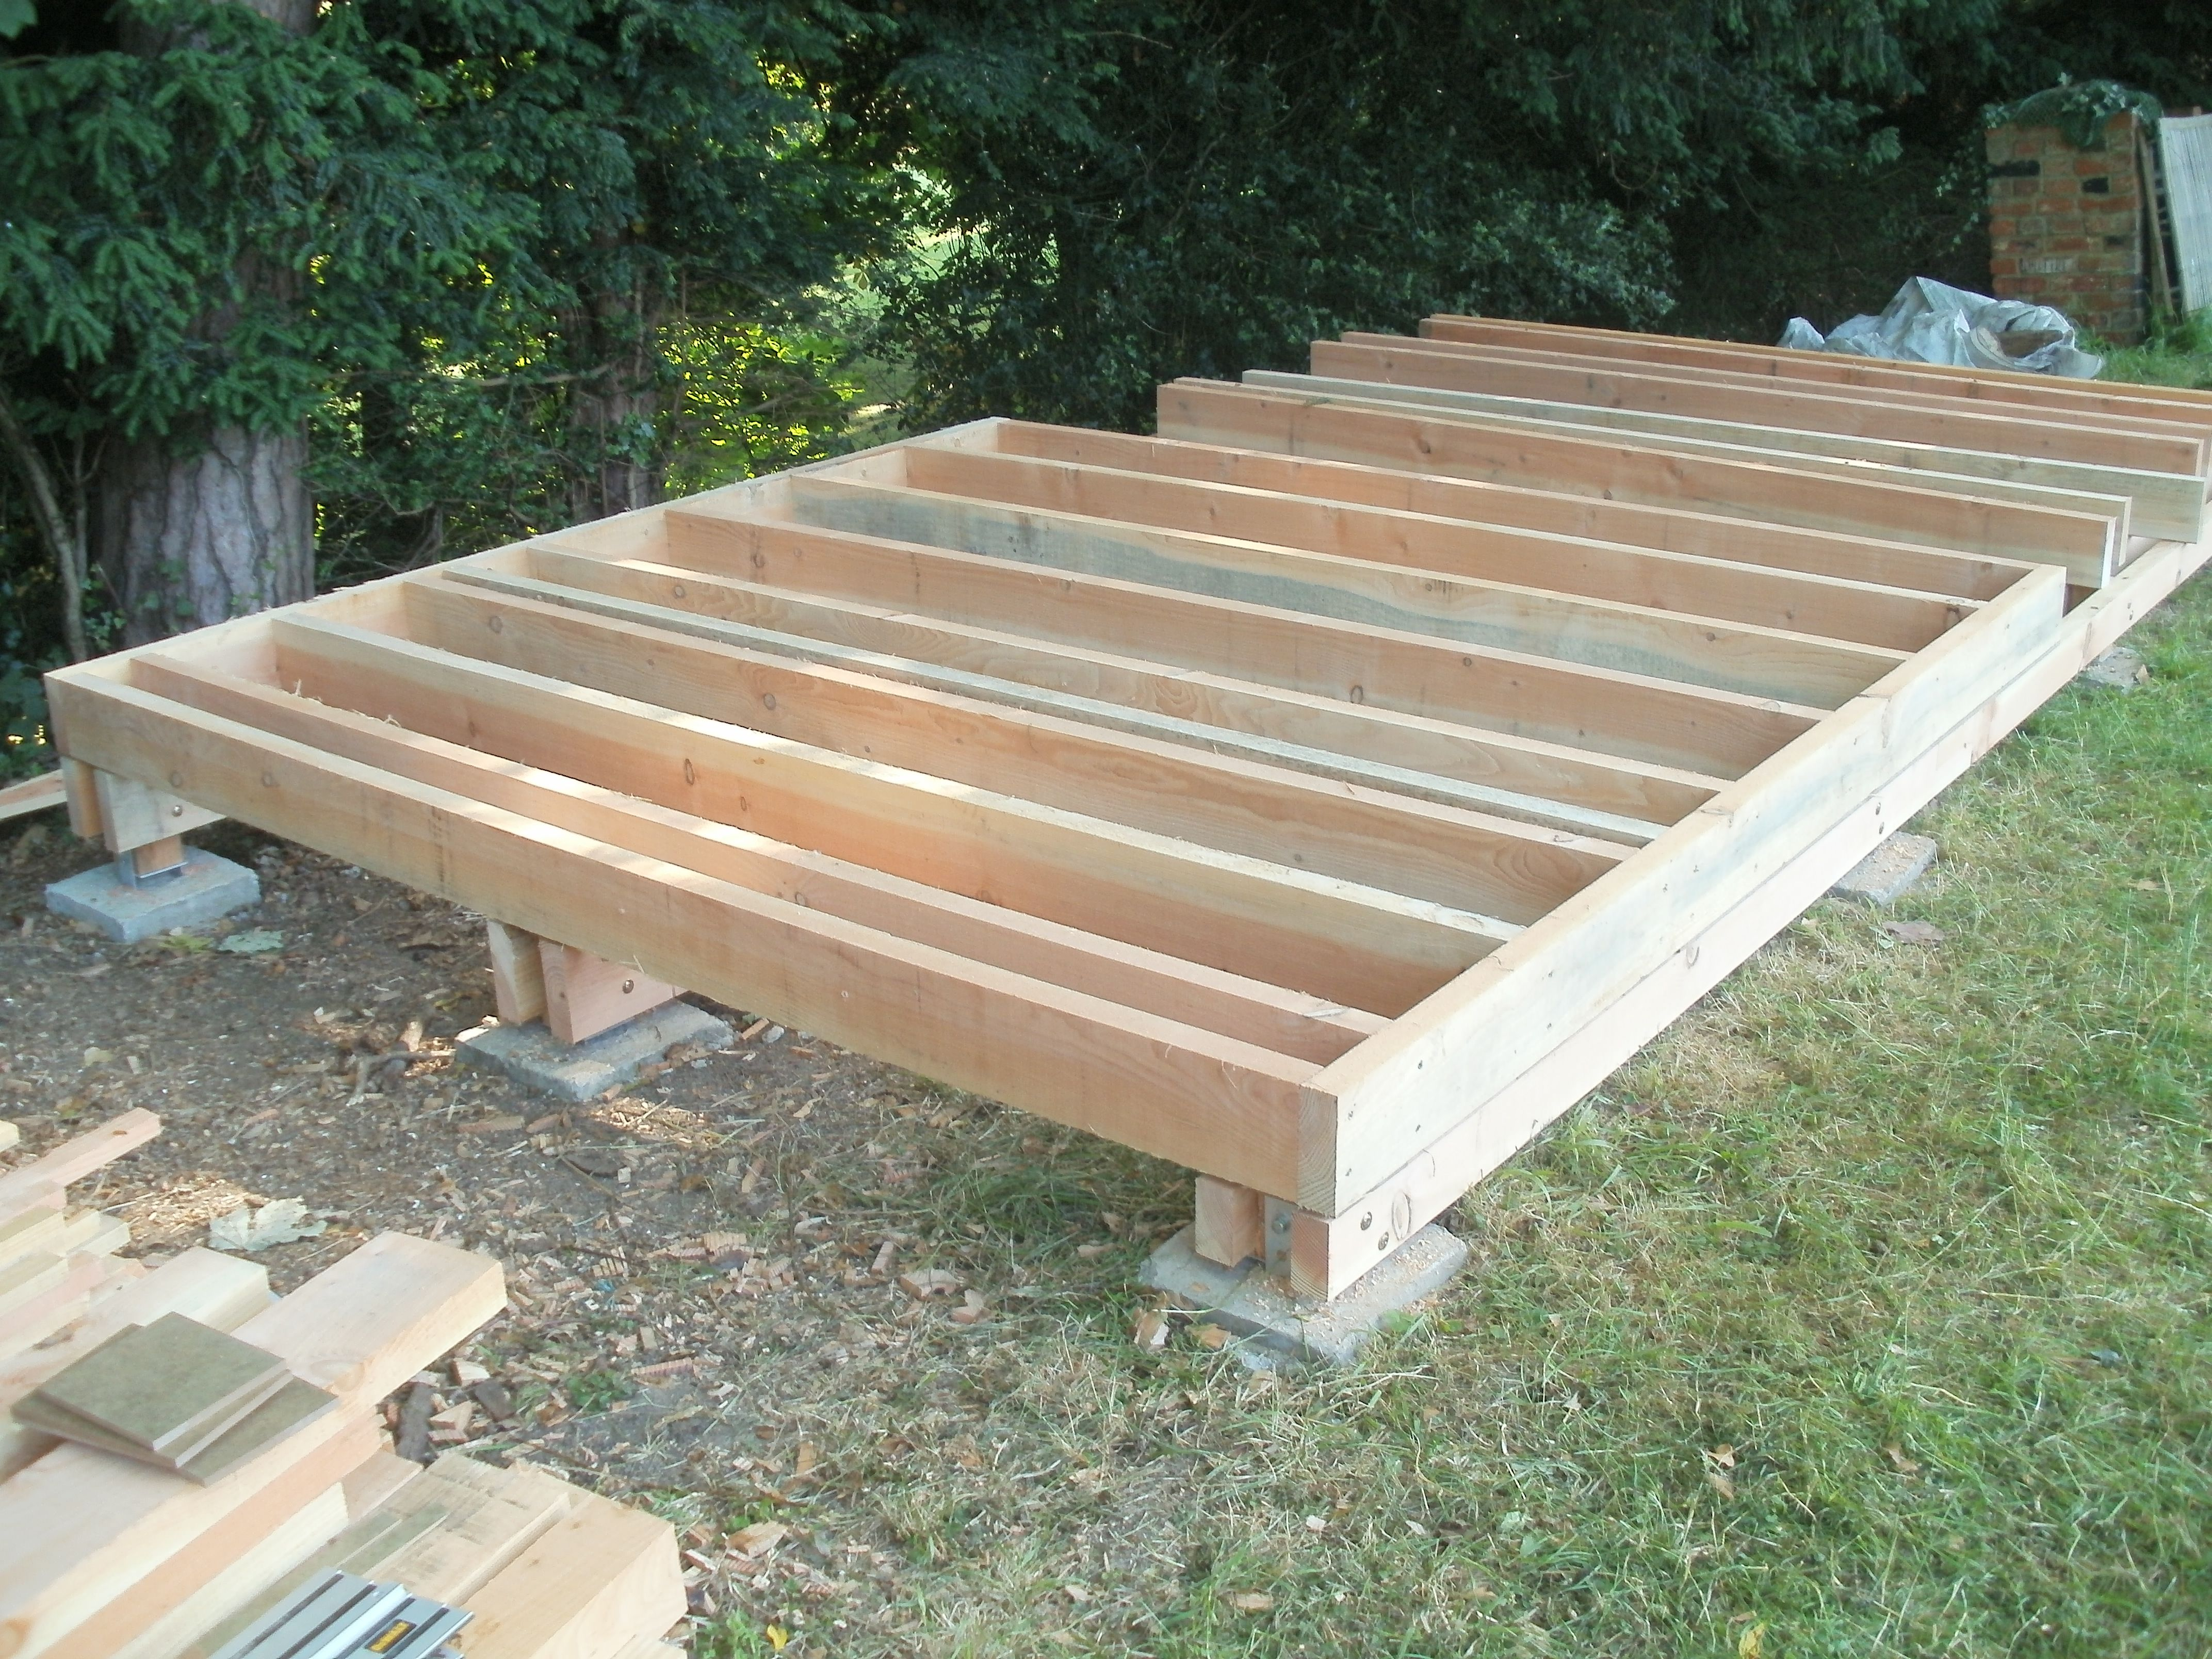 Floor joists of douglas fir or larch posts allow for